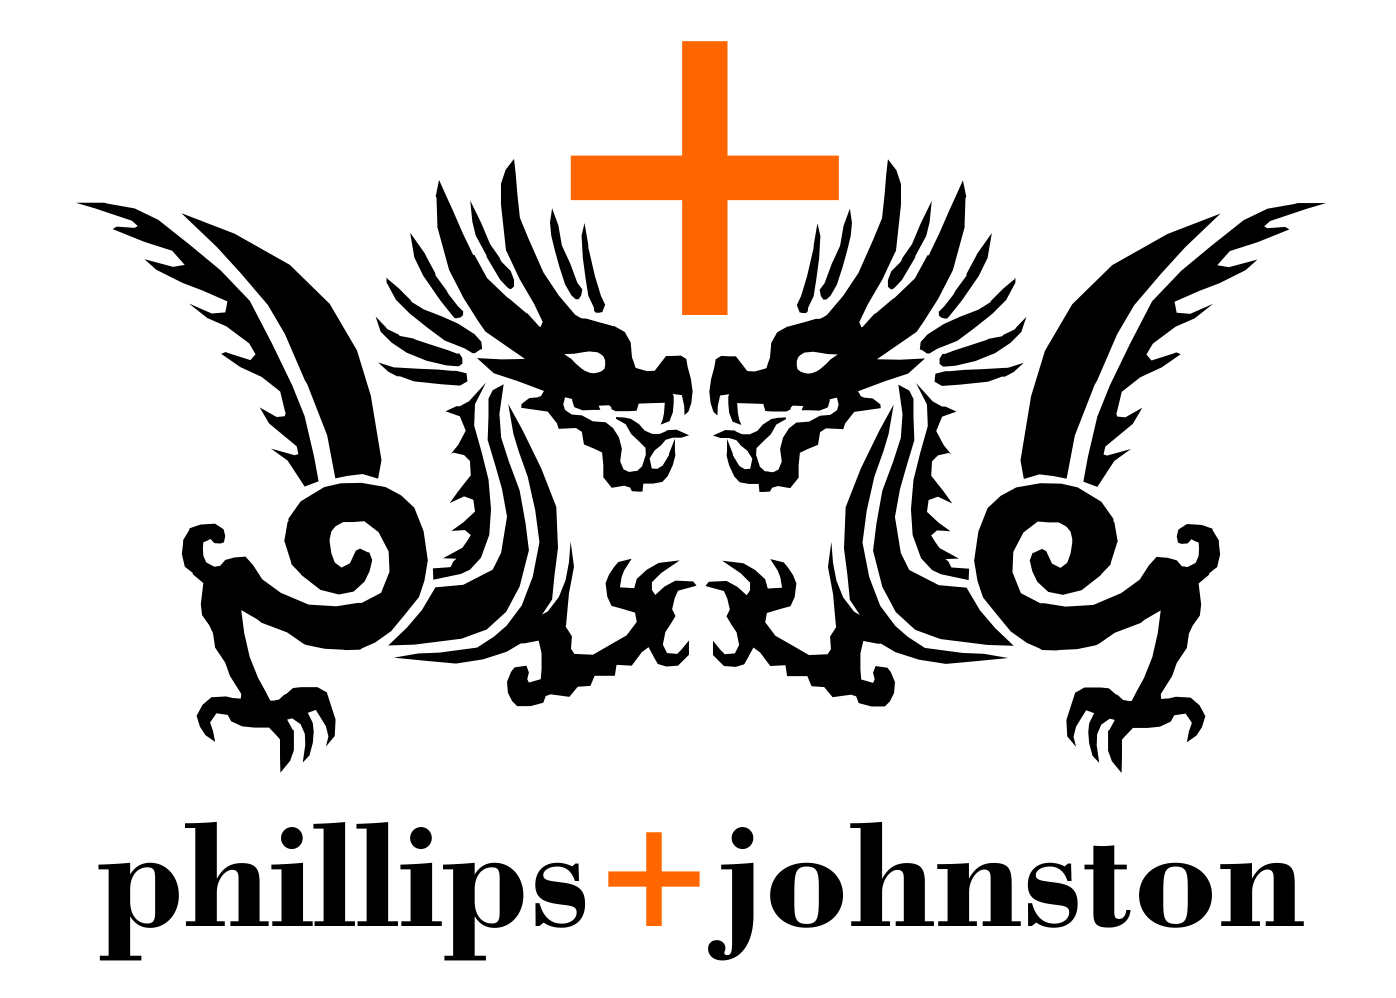 phillips + johnston